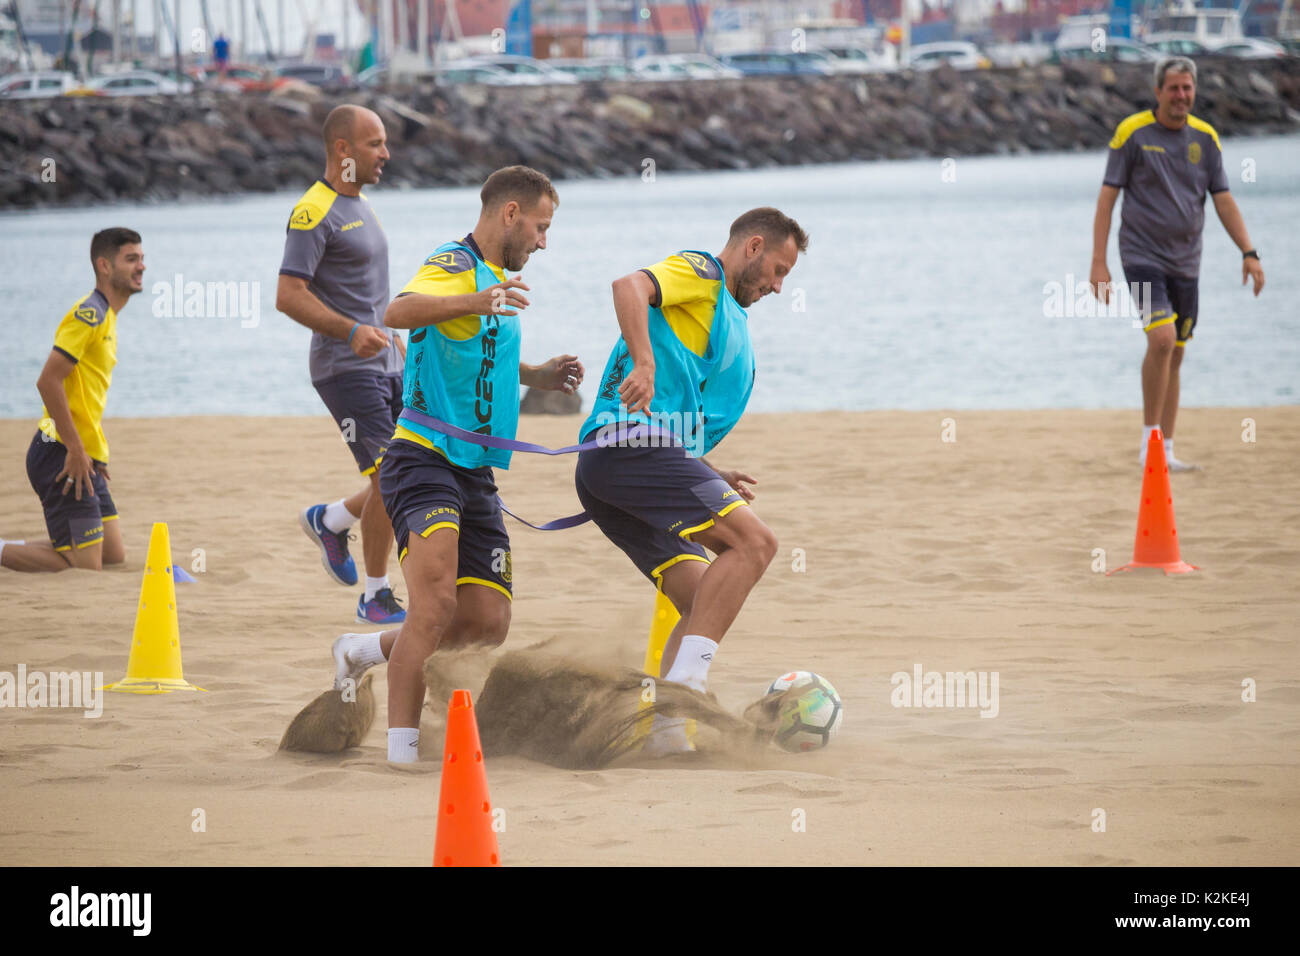 Las Palmas, Gran Canaria, Canary Islands, Spain. 31st August, 2017. With Chelsea striker Loic Remy rumoured to be close to signing for Spanish La Liga team, Las Palmas, the Las Palmas players have a morning training session on one of the city beaches in Las Palmas, the capital of Gran Canaria. - Stock Image